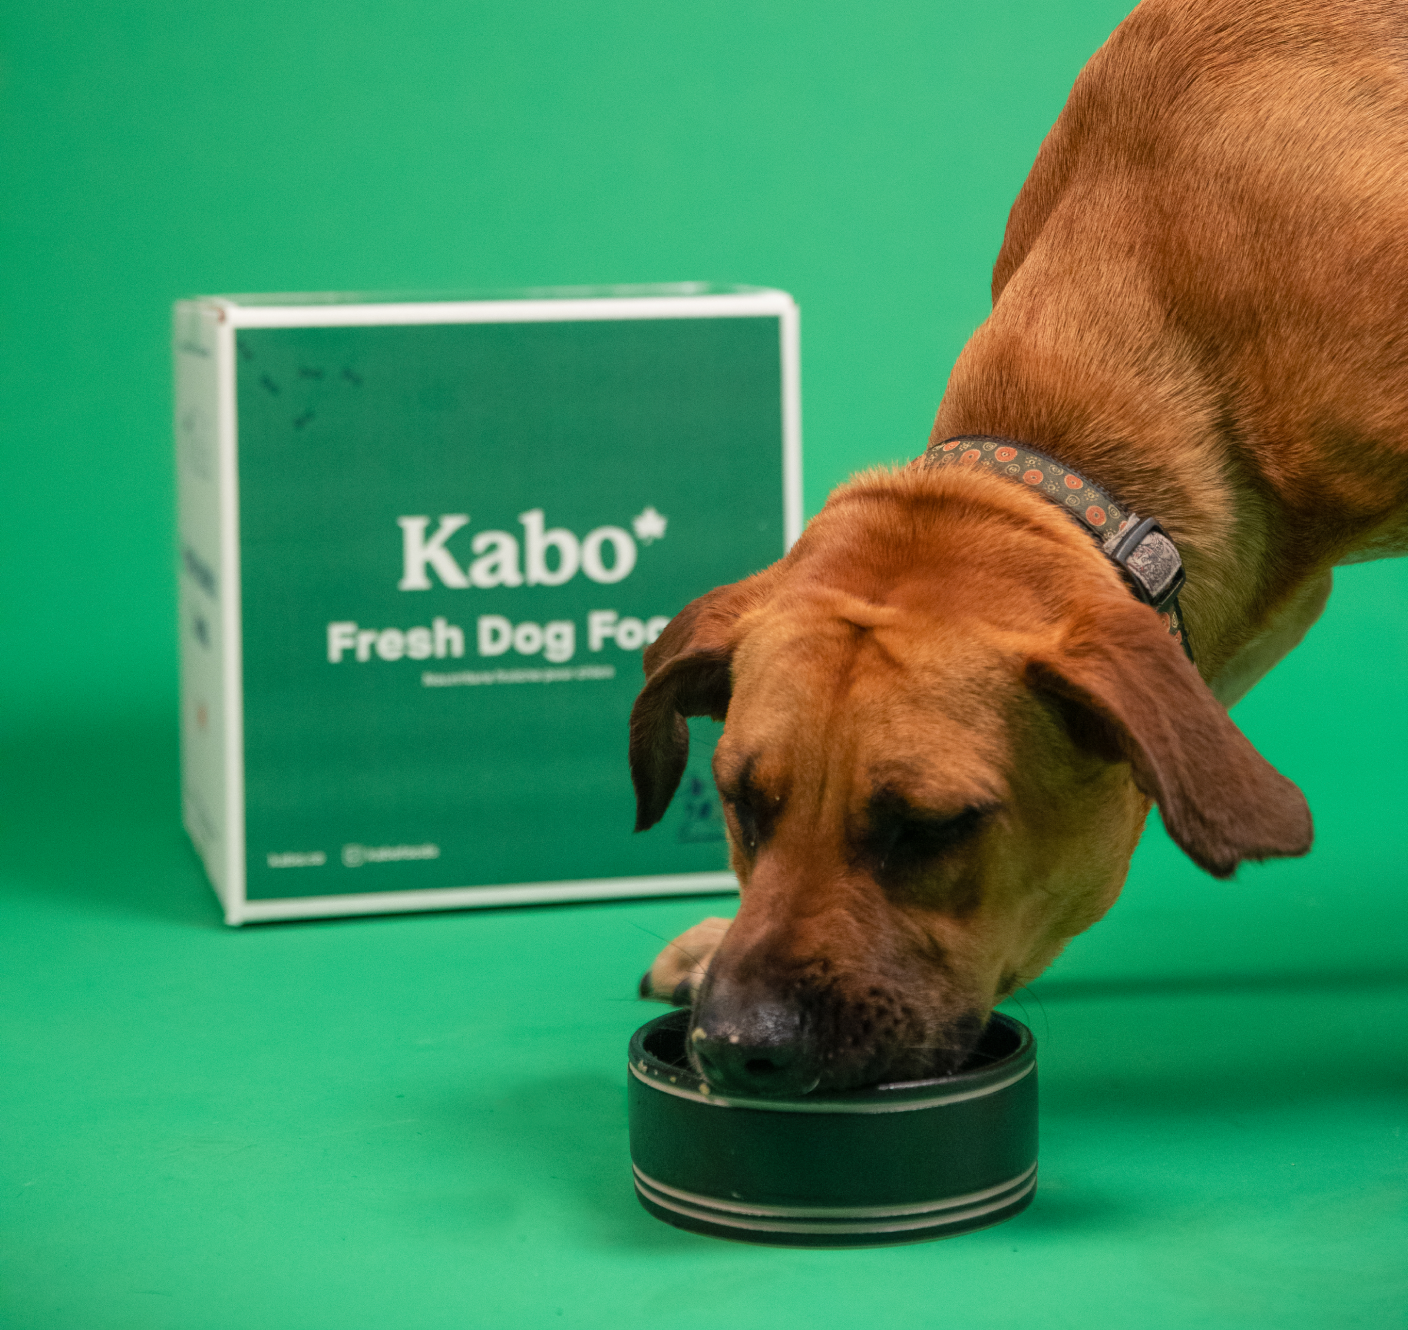 Black Mouth Curr eating from a ceramic bowl in front of a kabo box